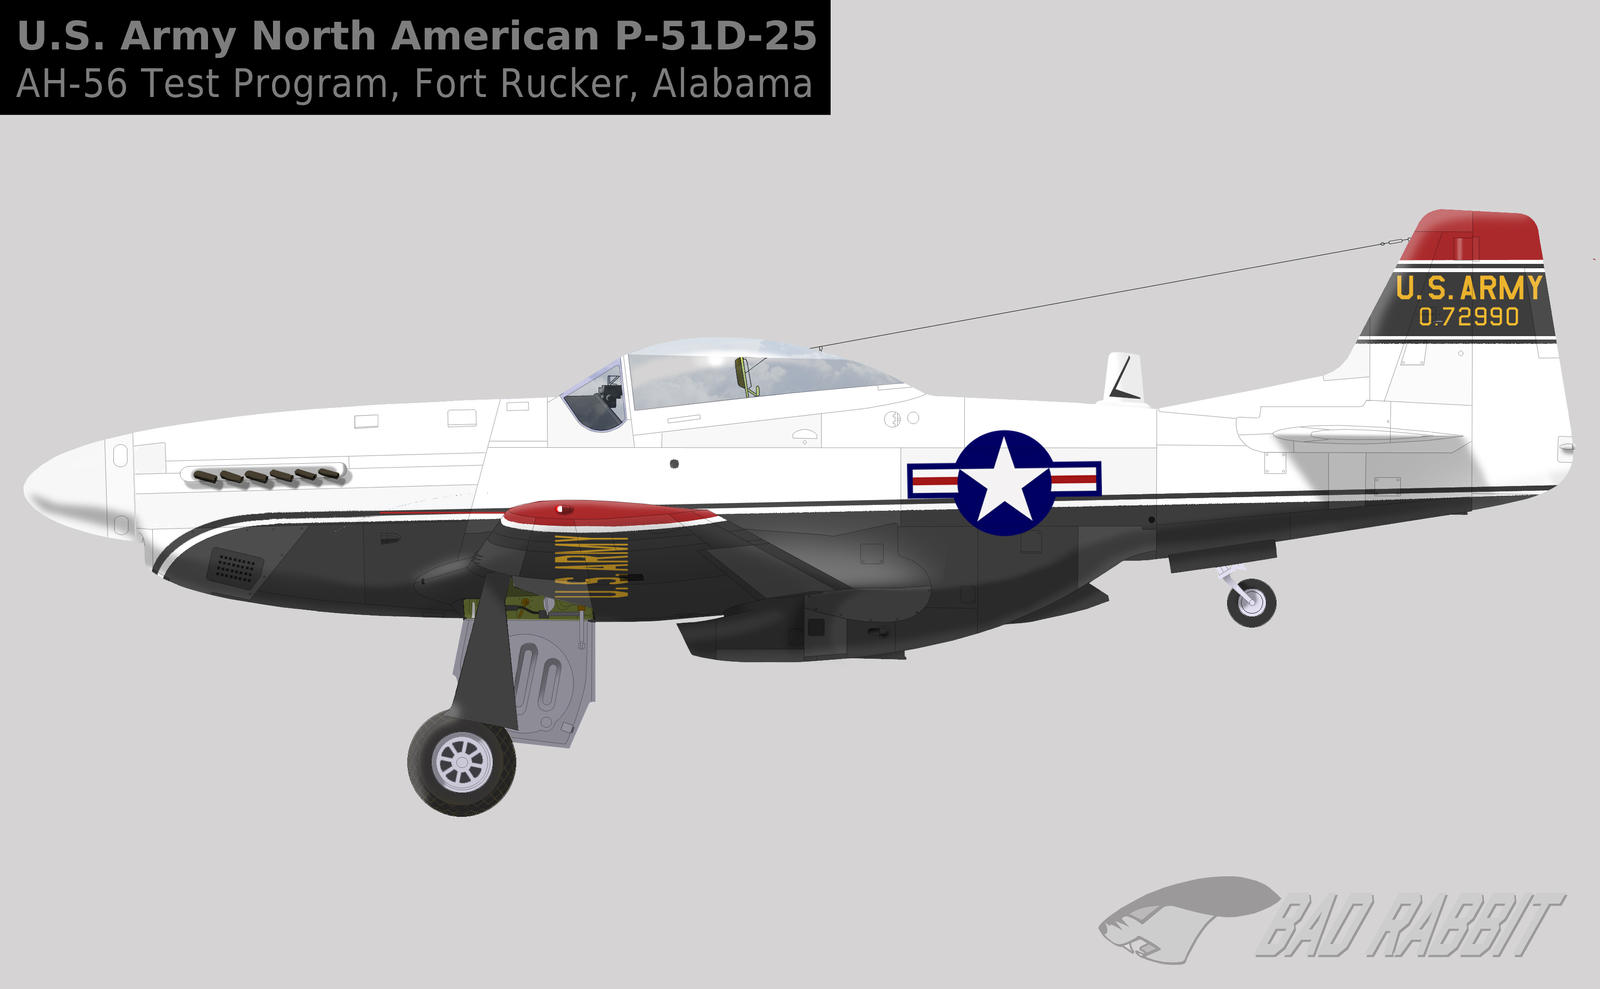 44-72990 US Army - A Mustang for the Cheyenne    by Bad